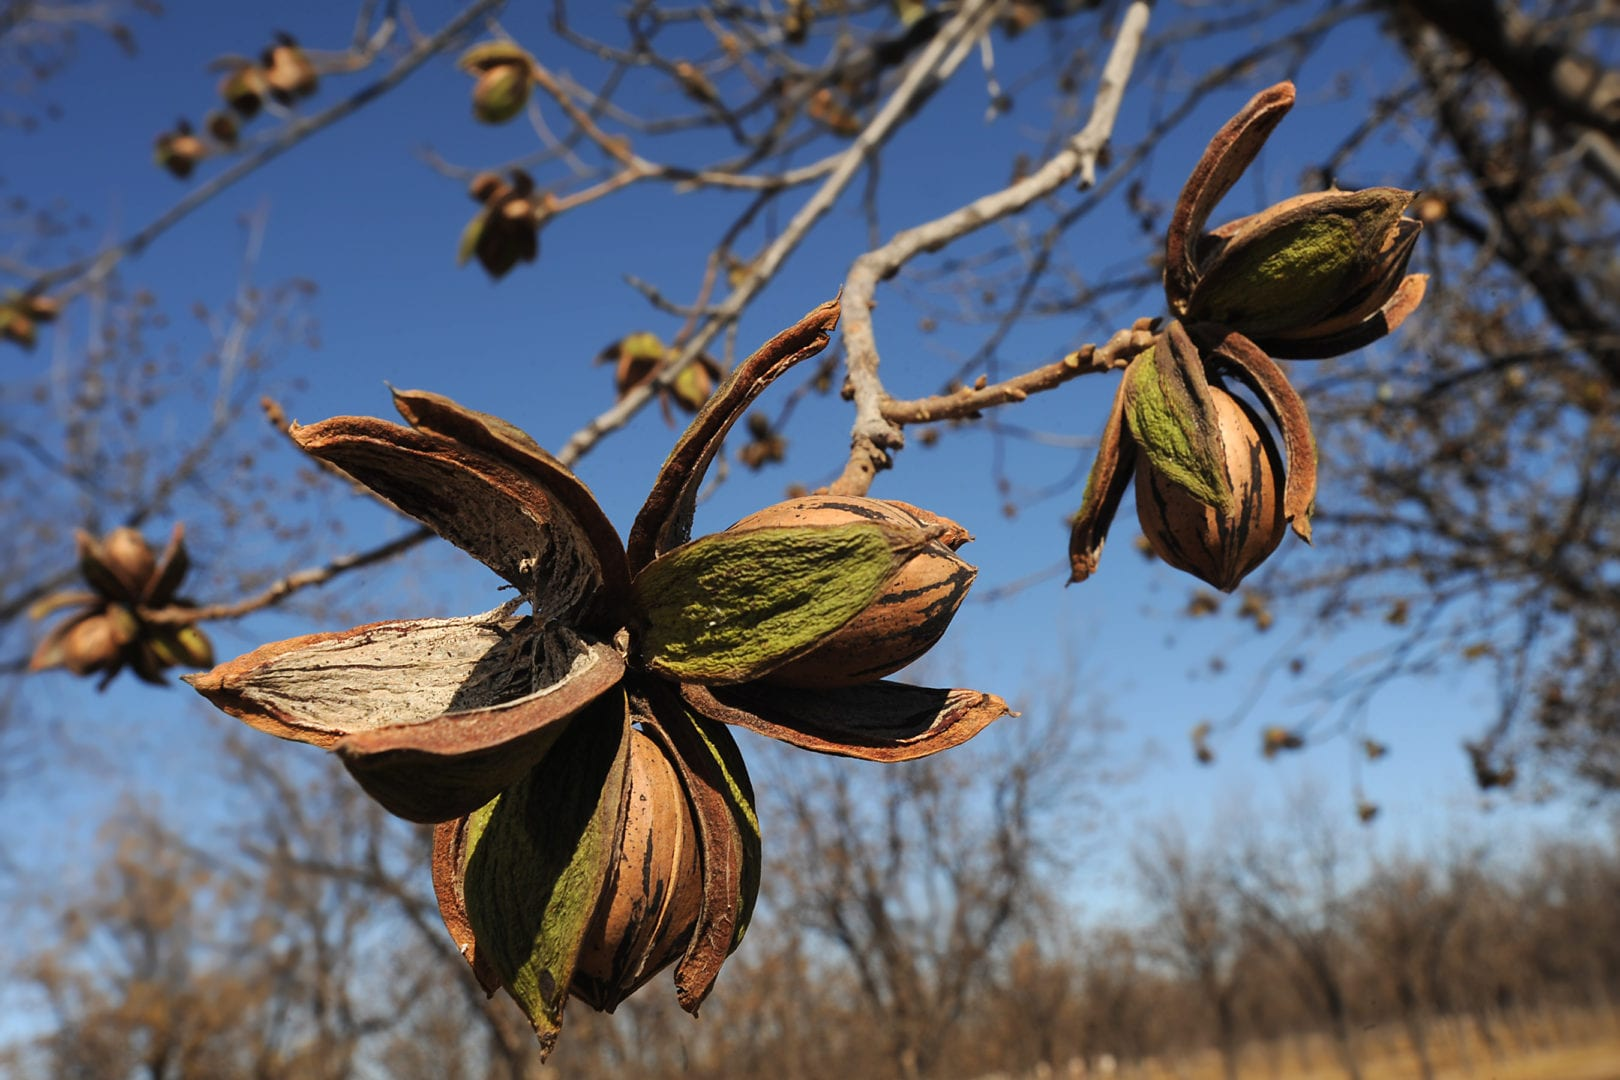 pecan nuts on the tree ready to fall to the ground